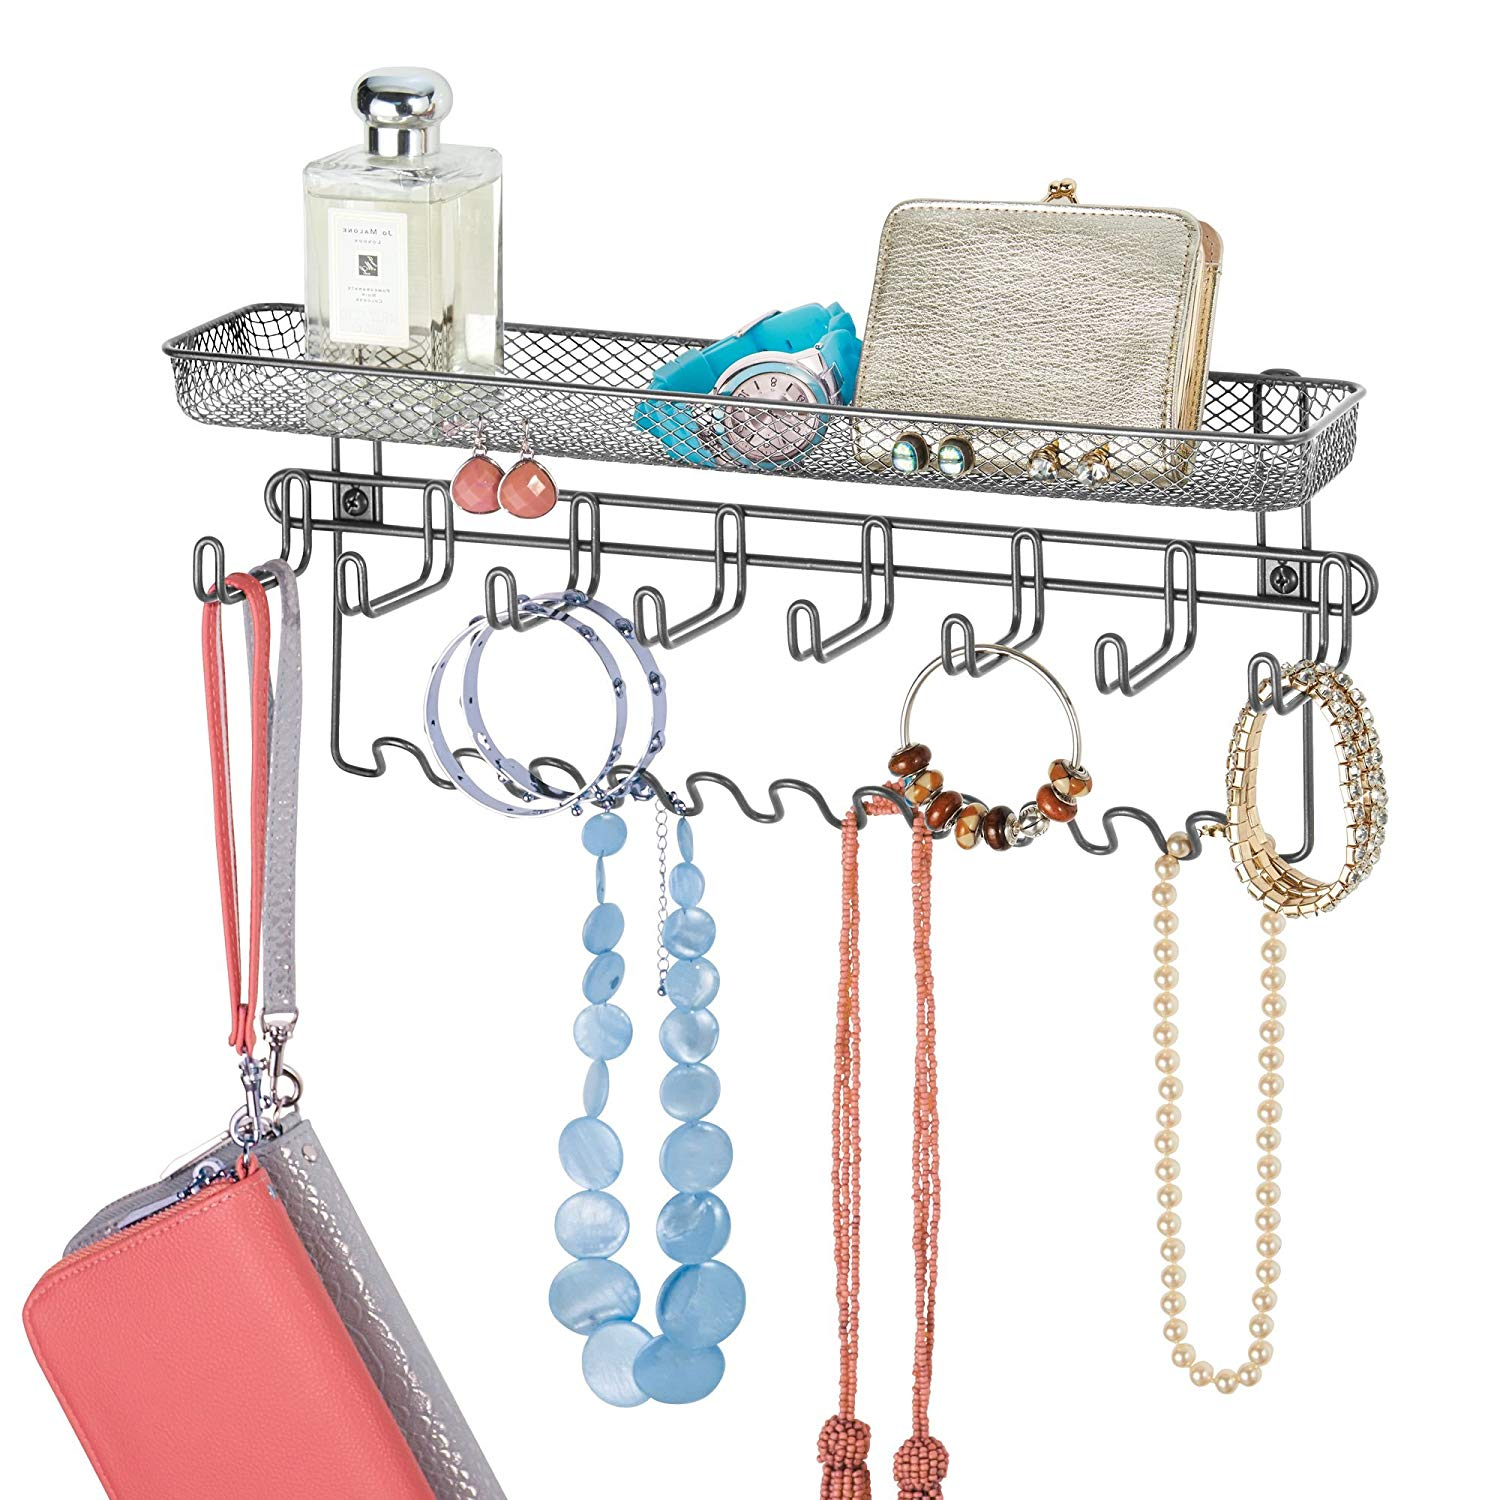 Get Quotations Mdesign Decorative Metal Closet Wall Mount Jewelry Accessory Organizer For Storage Of Necklaces Bracelets